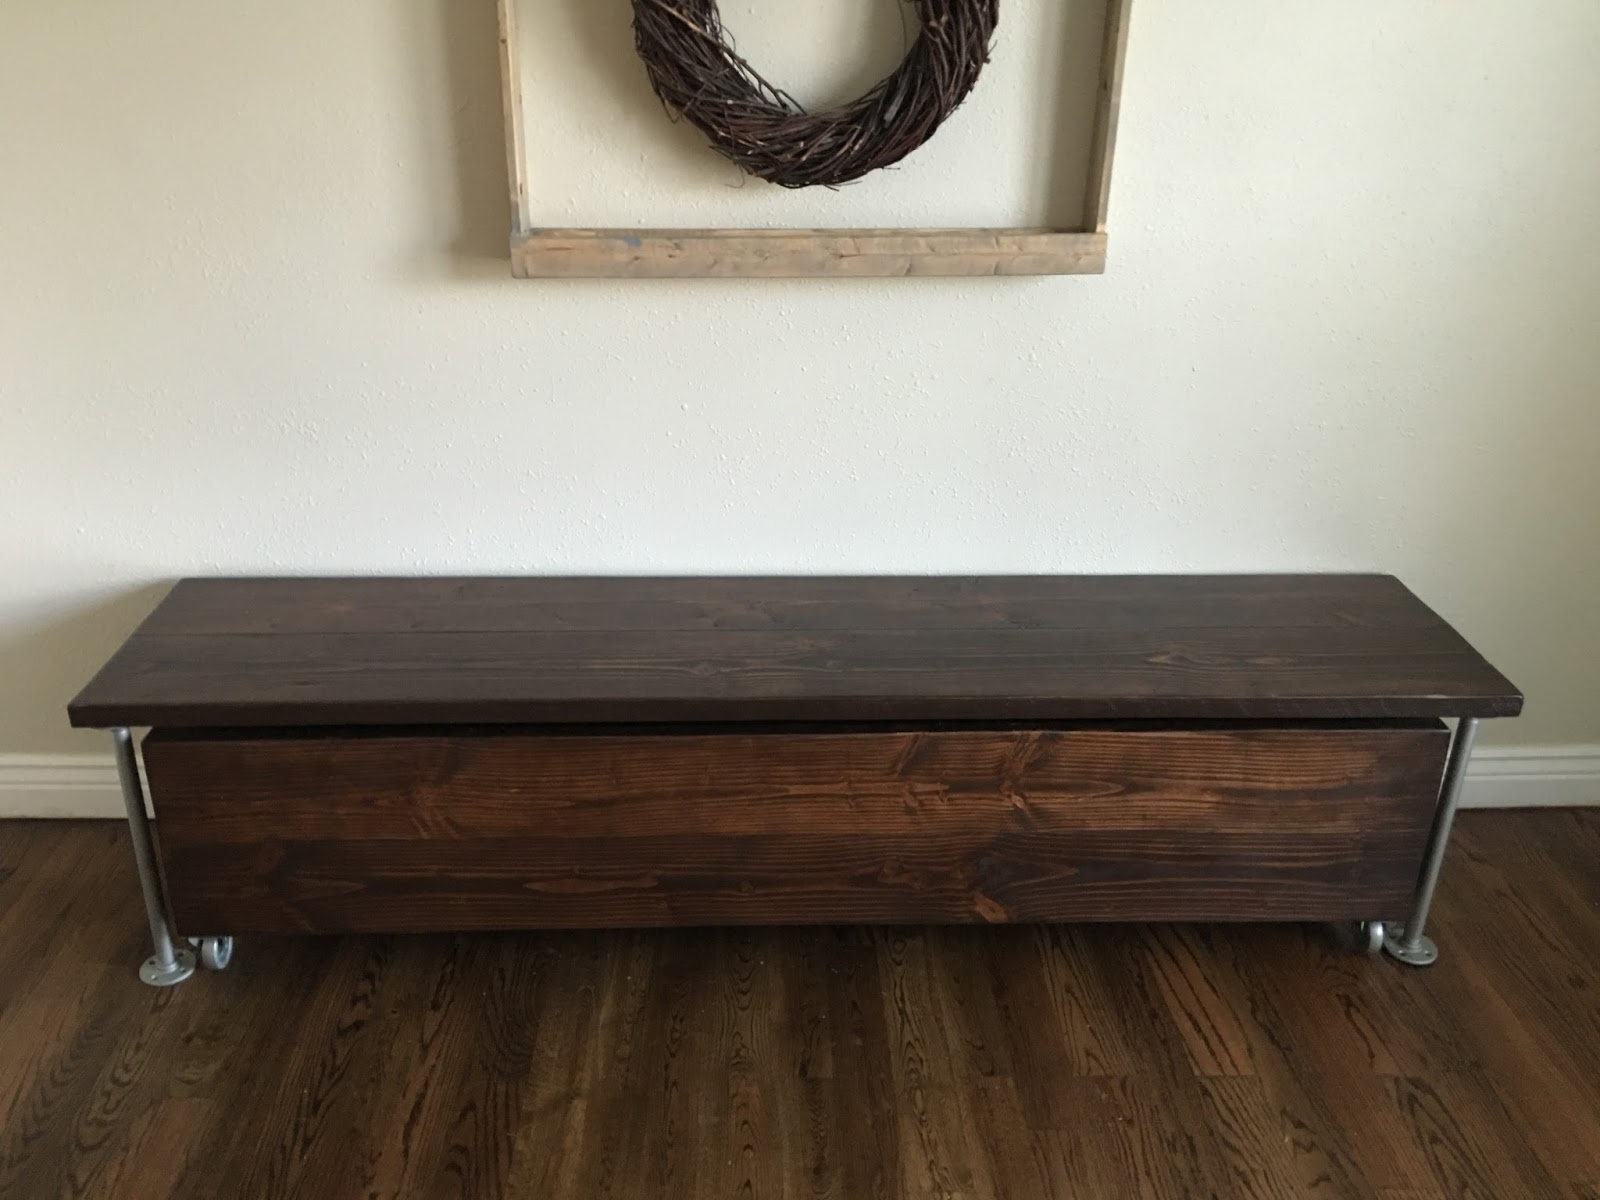 Pipe Bench with Pull Out Wooden Storage Hardy Home Reno